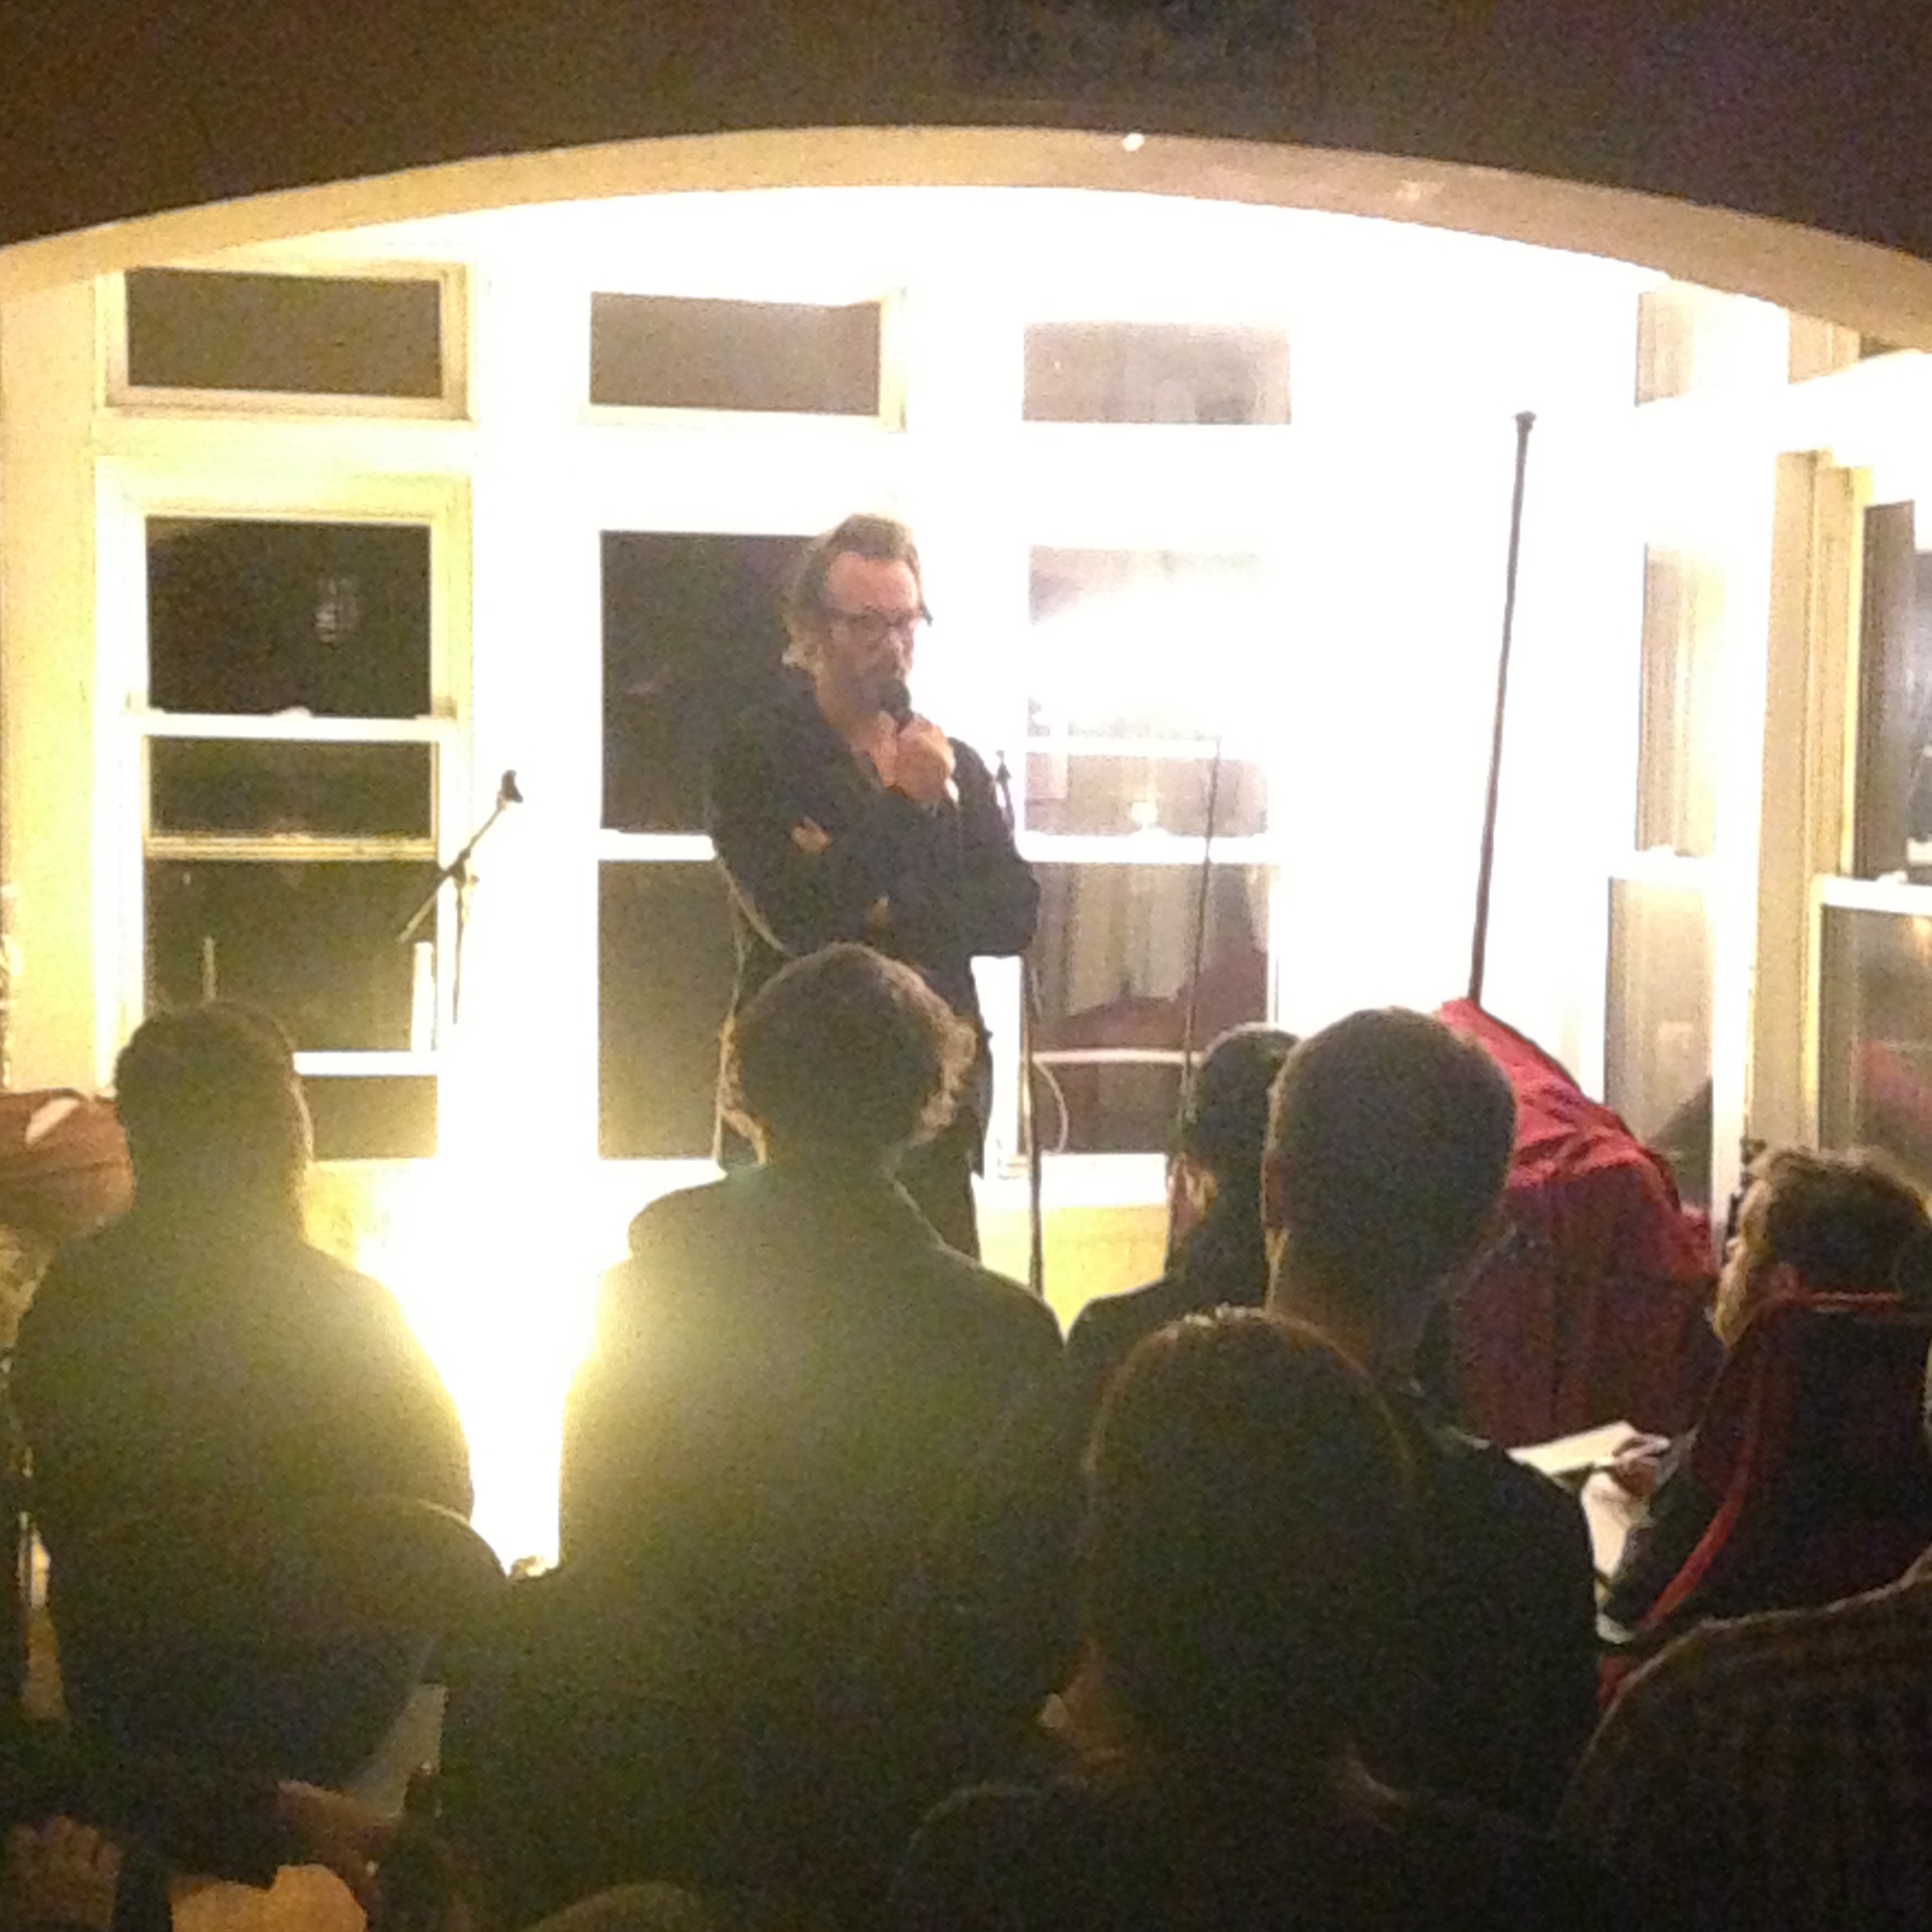 Ben Kronberg dropping in to do a set at a WSLY apartment show.